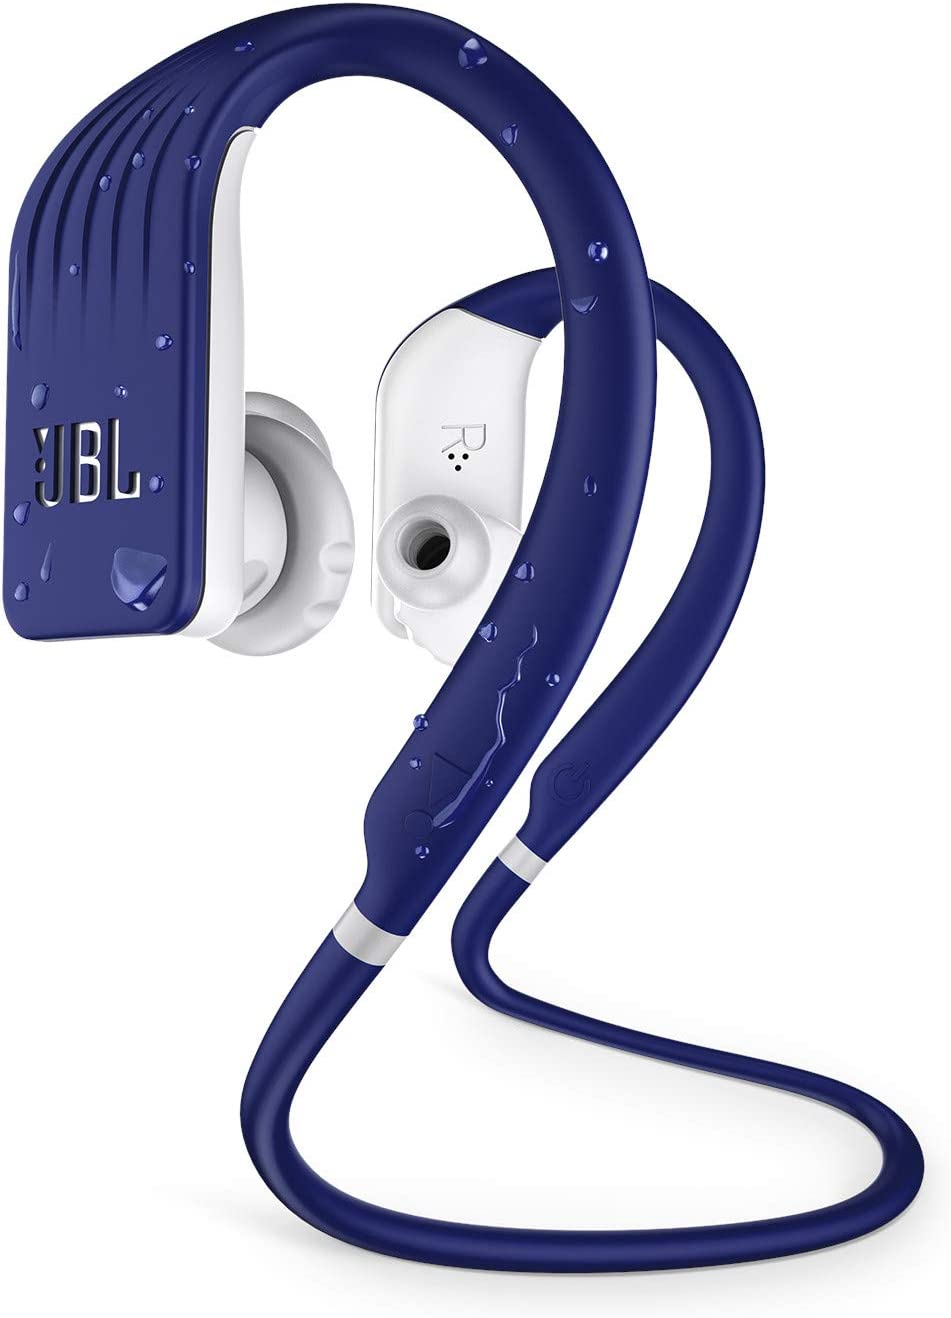 JBL ENDURANCE JUMP- Wireless heaphones, bluetooth sport earphones with microphone, Waterproof, up to 8 hours battery, charging case and quick charge, works with Android and Apple iOS (blue)